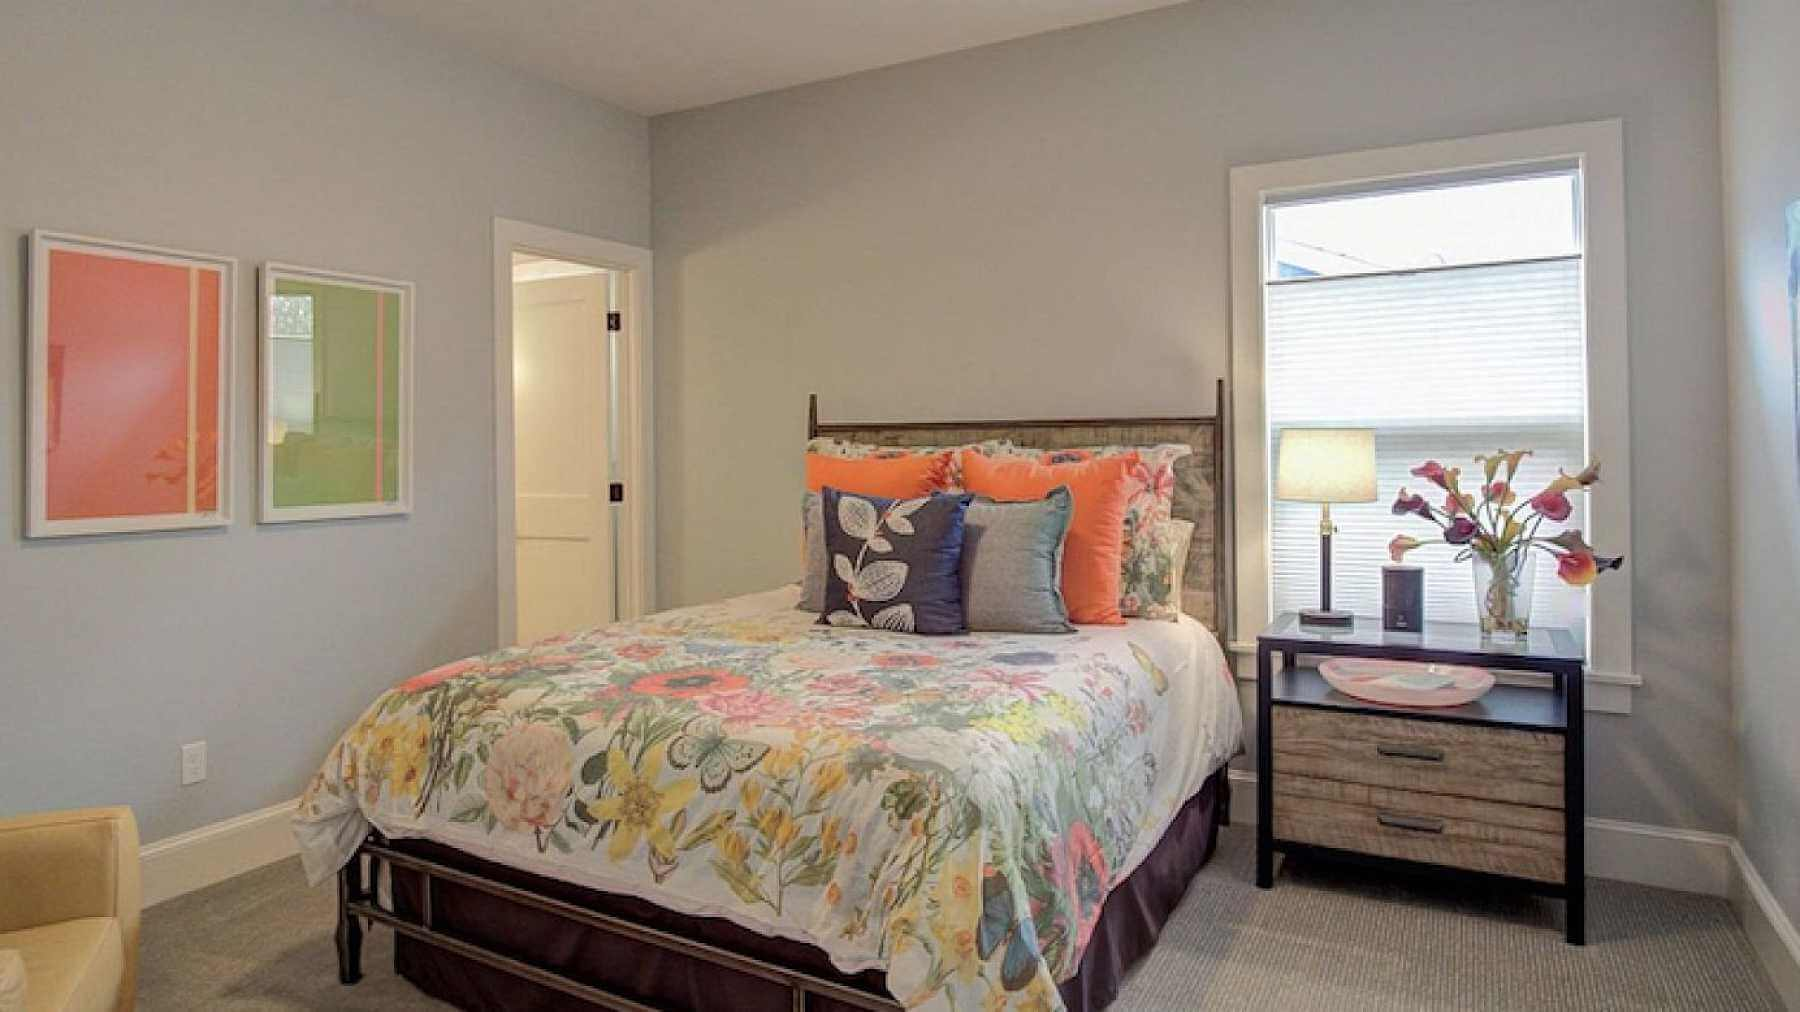 Bedroom Walls In Sherwin Williams Agreeable Gray